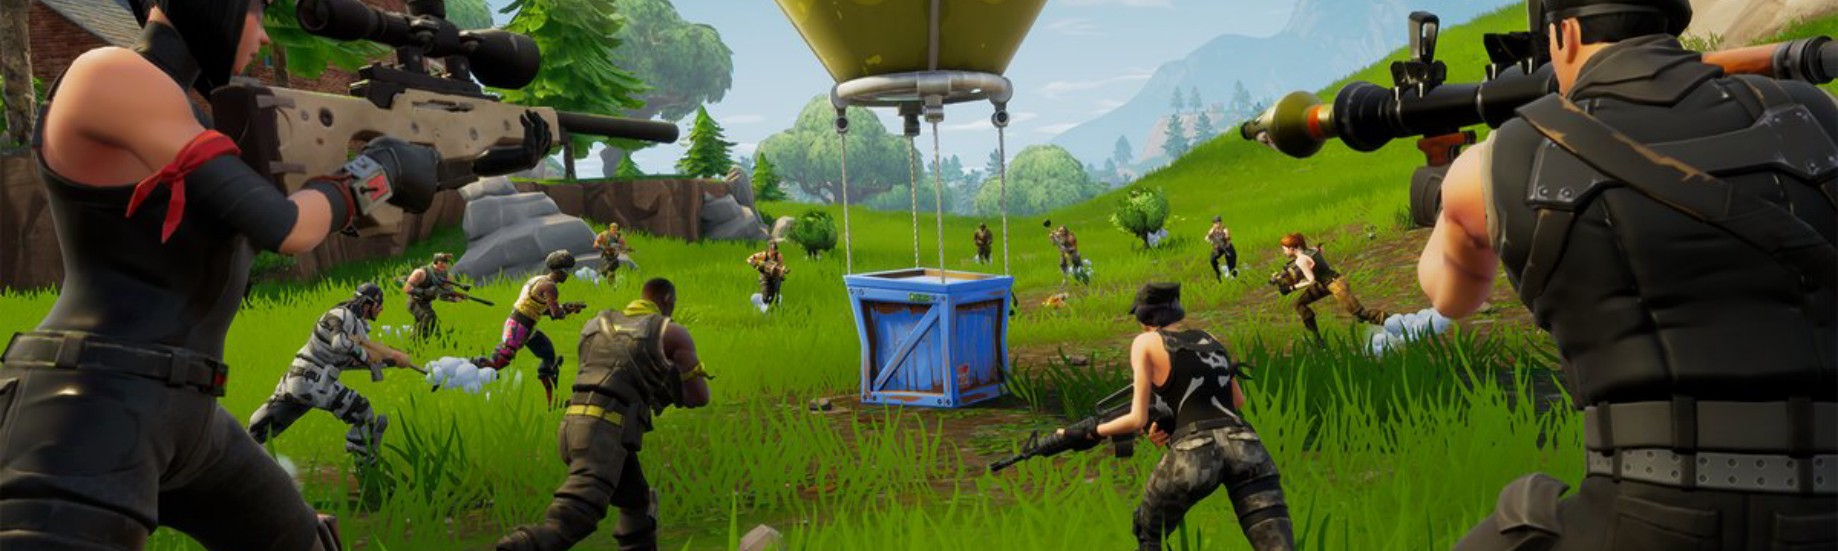 How Epic Games optimized Unreal Engine for Fortnite Battle